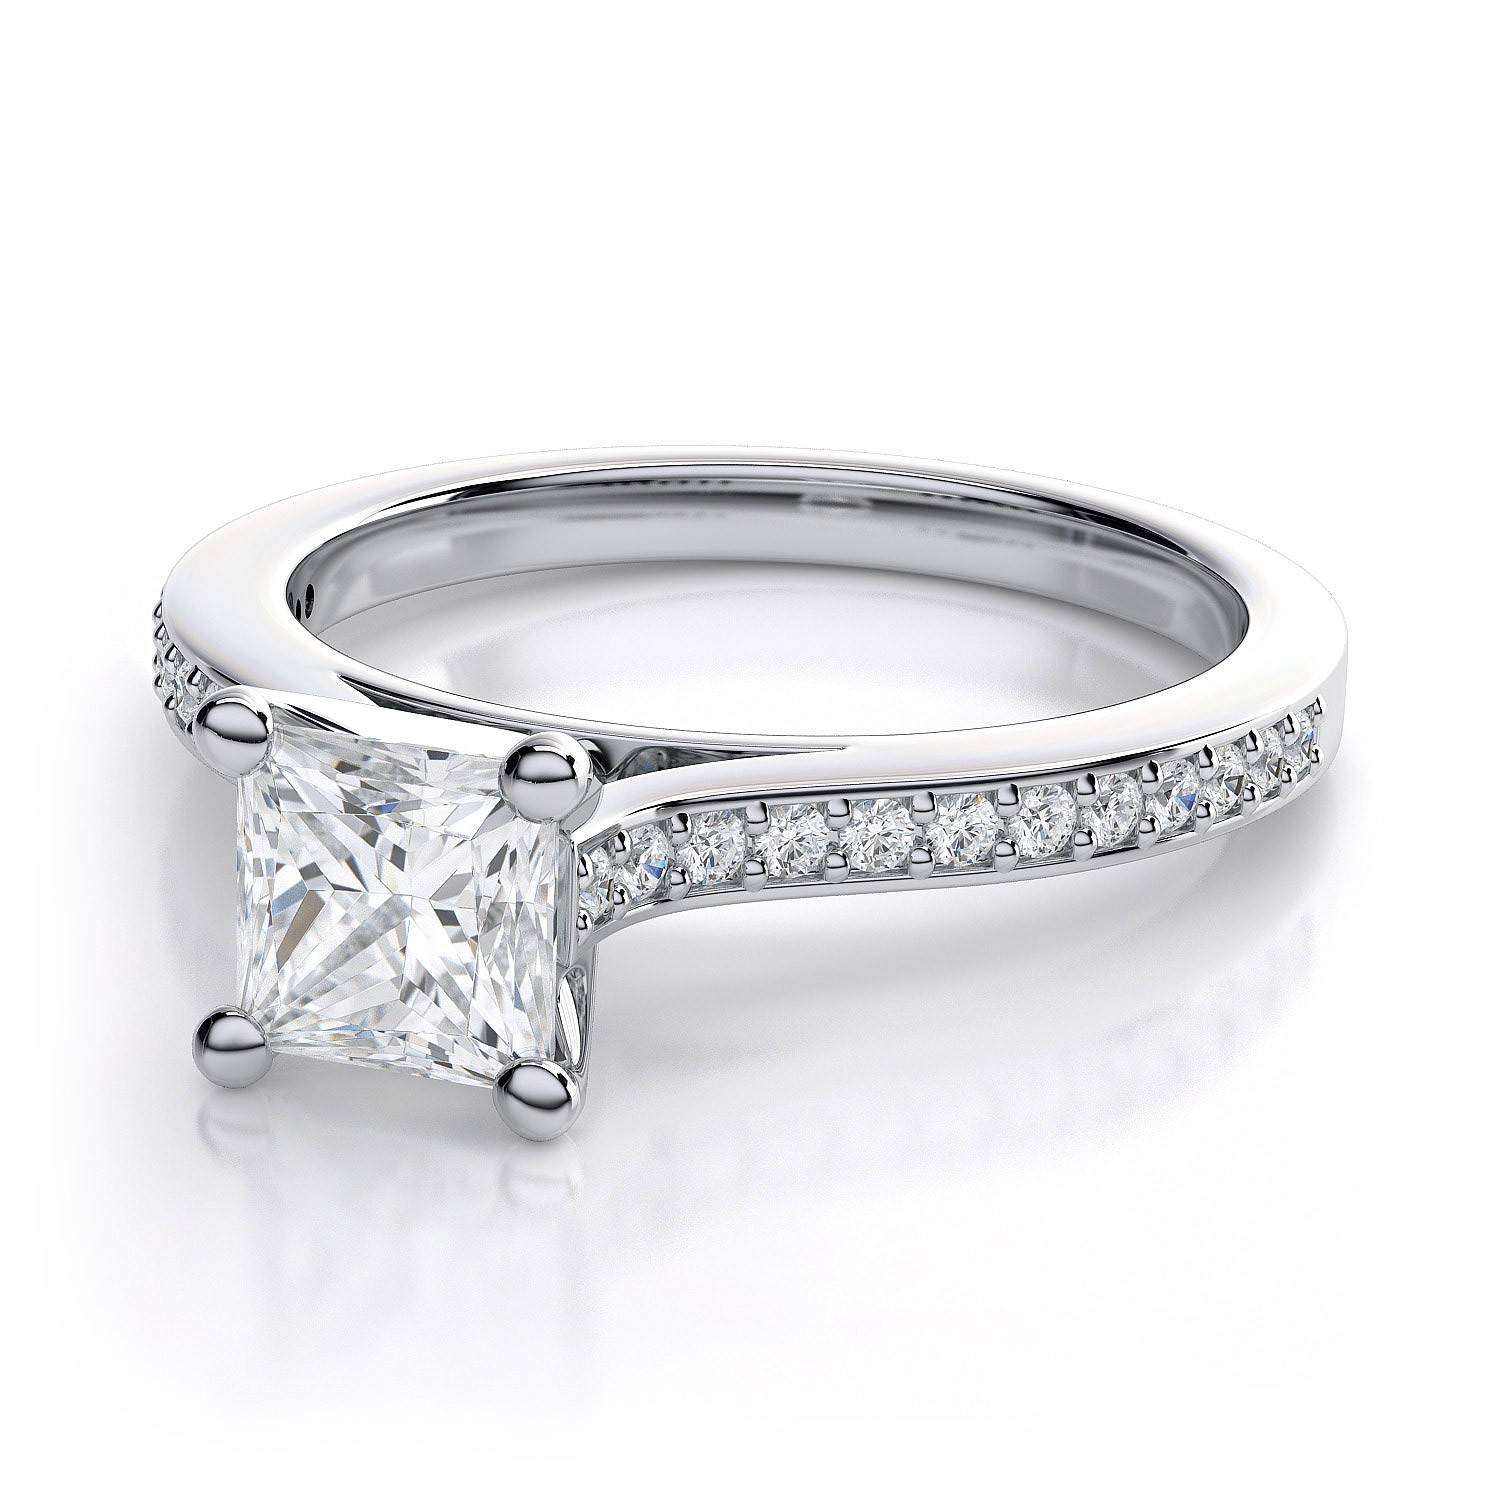 0.5 Carat .74ctw Princess Cut Diamond Engagement Ring In Palladium With Princess Cut Diamond Engagement Rings (Gallery 1 of 15)